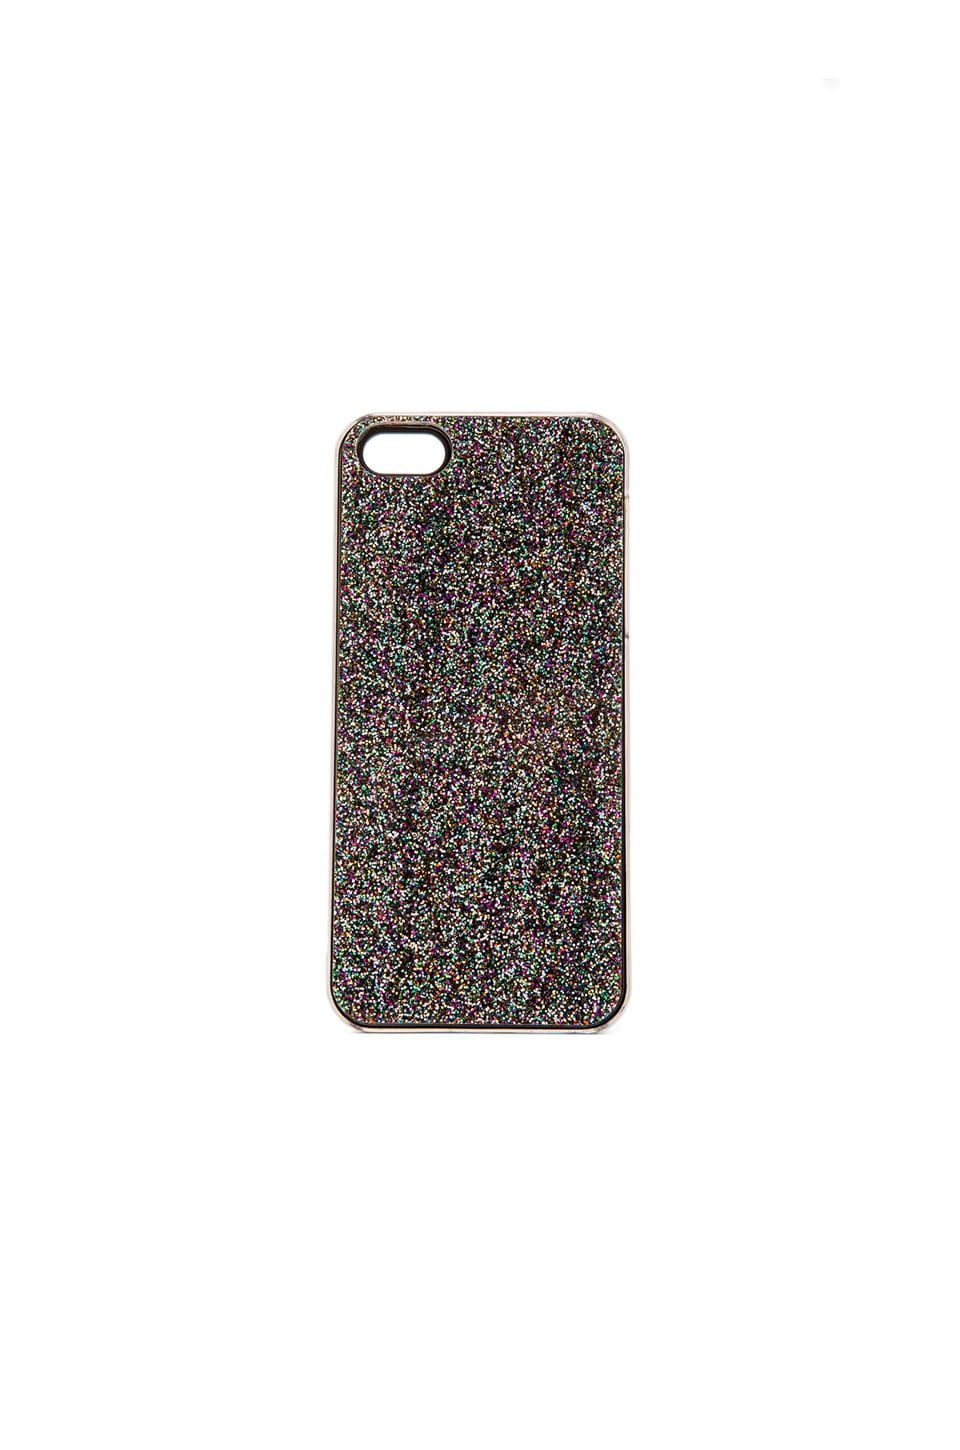 ZERO GRAVITY Cosmic Dust iPhone 5 Case in Multi